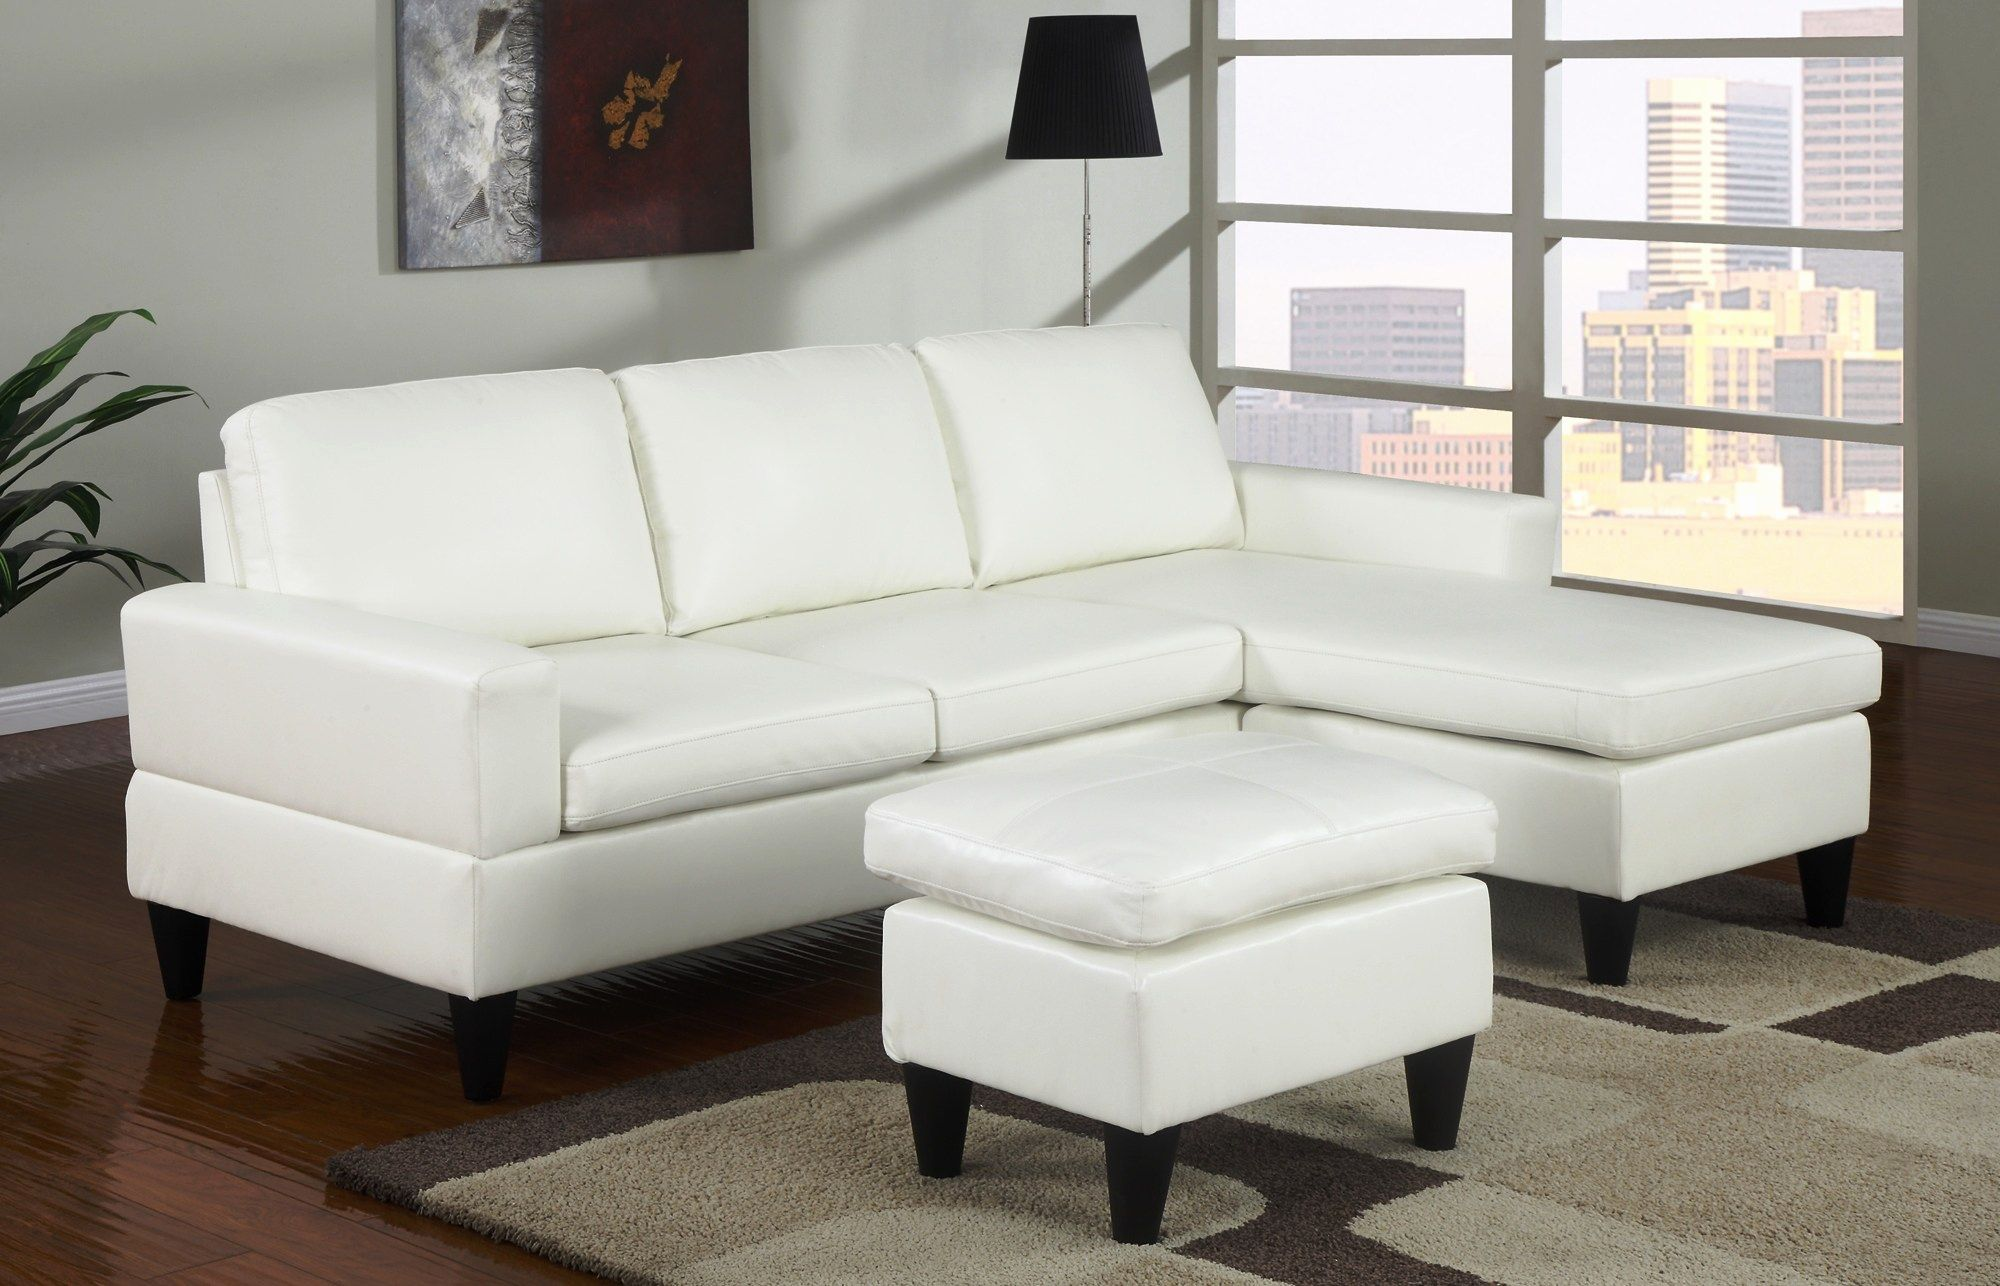 Elegant Office Furniture Sofa Art Office Furniture Sofa Unique Modern Design White Leat Sectional Sofa White Leather Sofas Small Space Sectional Sofa